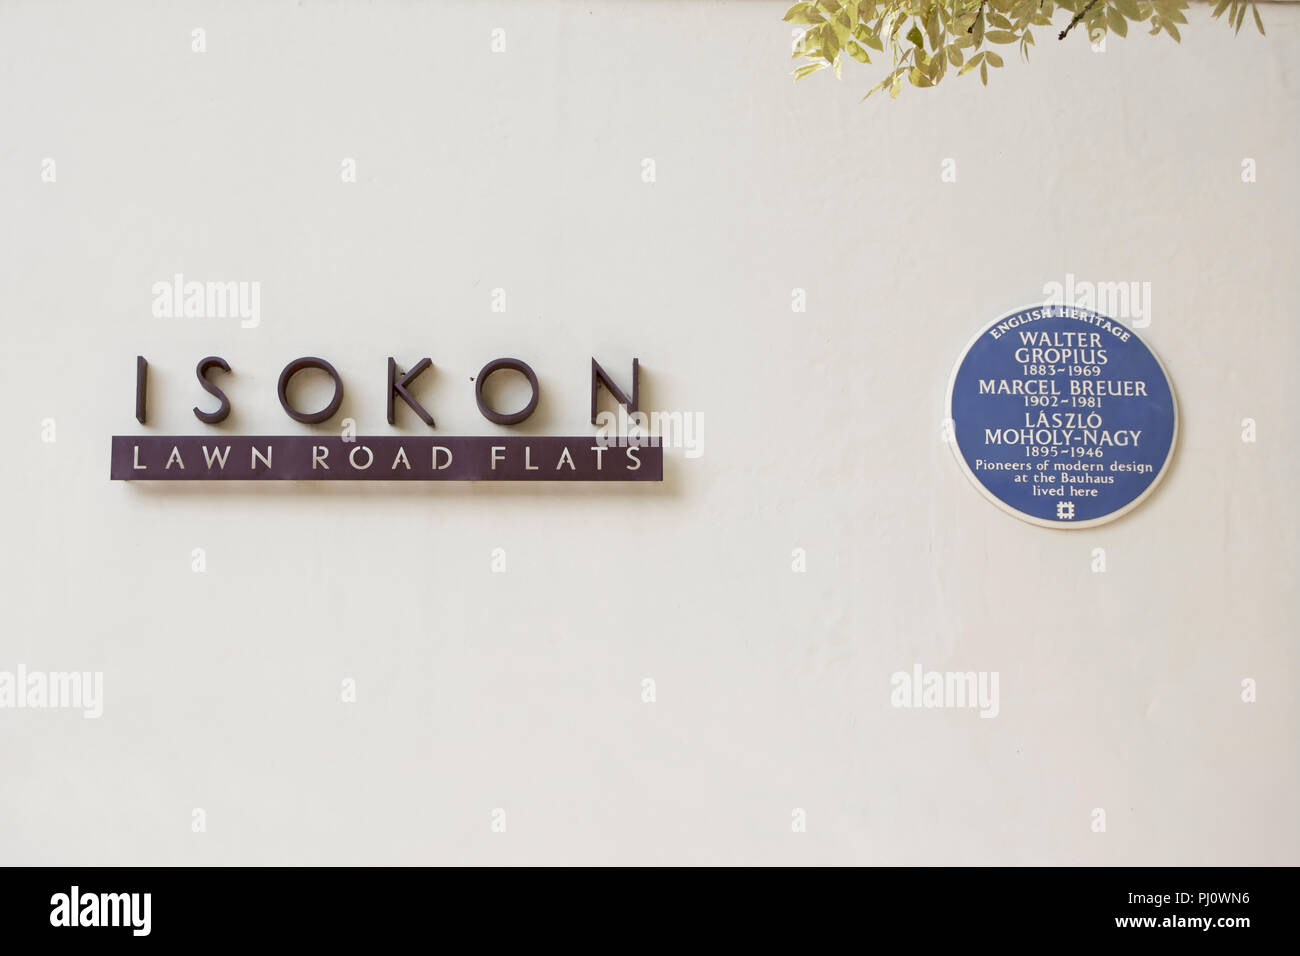 exterior with name sign of isokon lawn road flats, with blue plaque naming residents walter gropius, marcel breuer and laszlo moholy-nagy - Stock Image